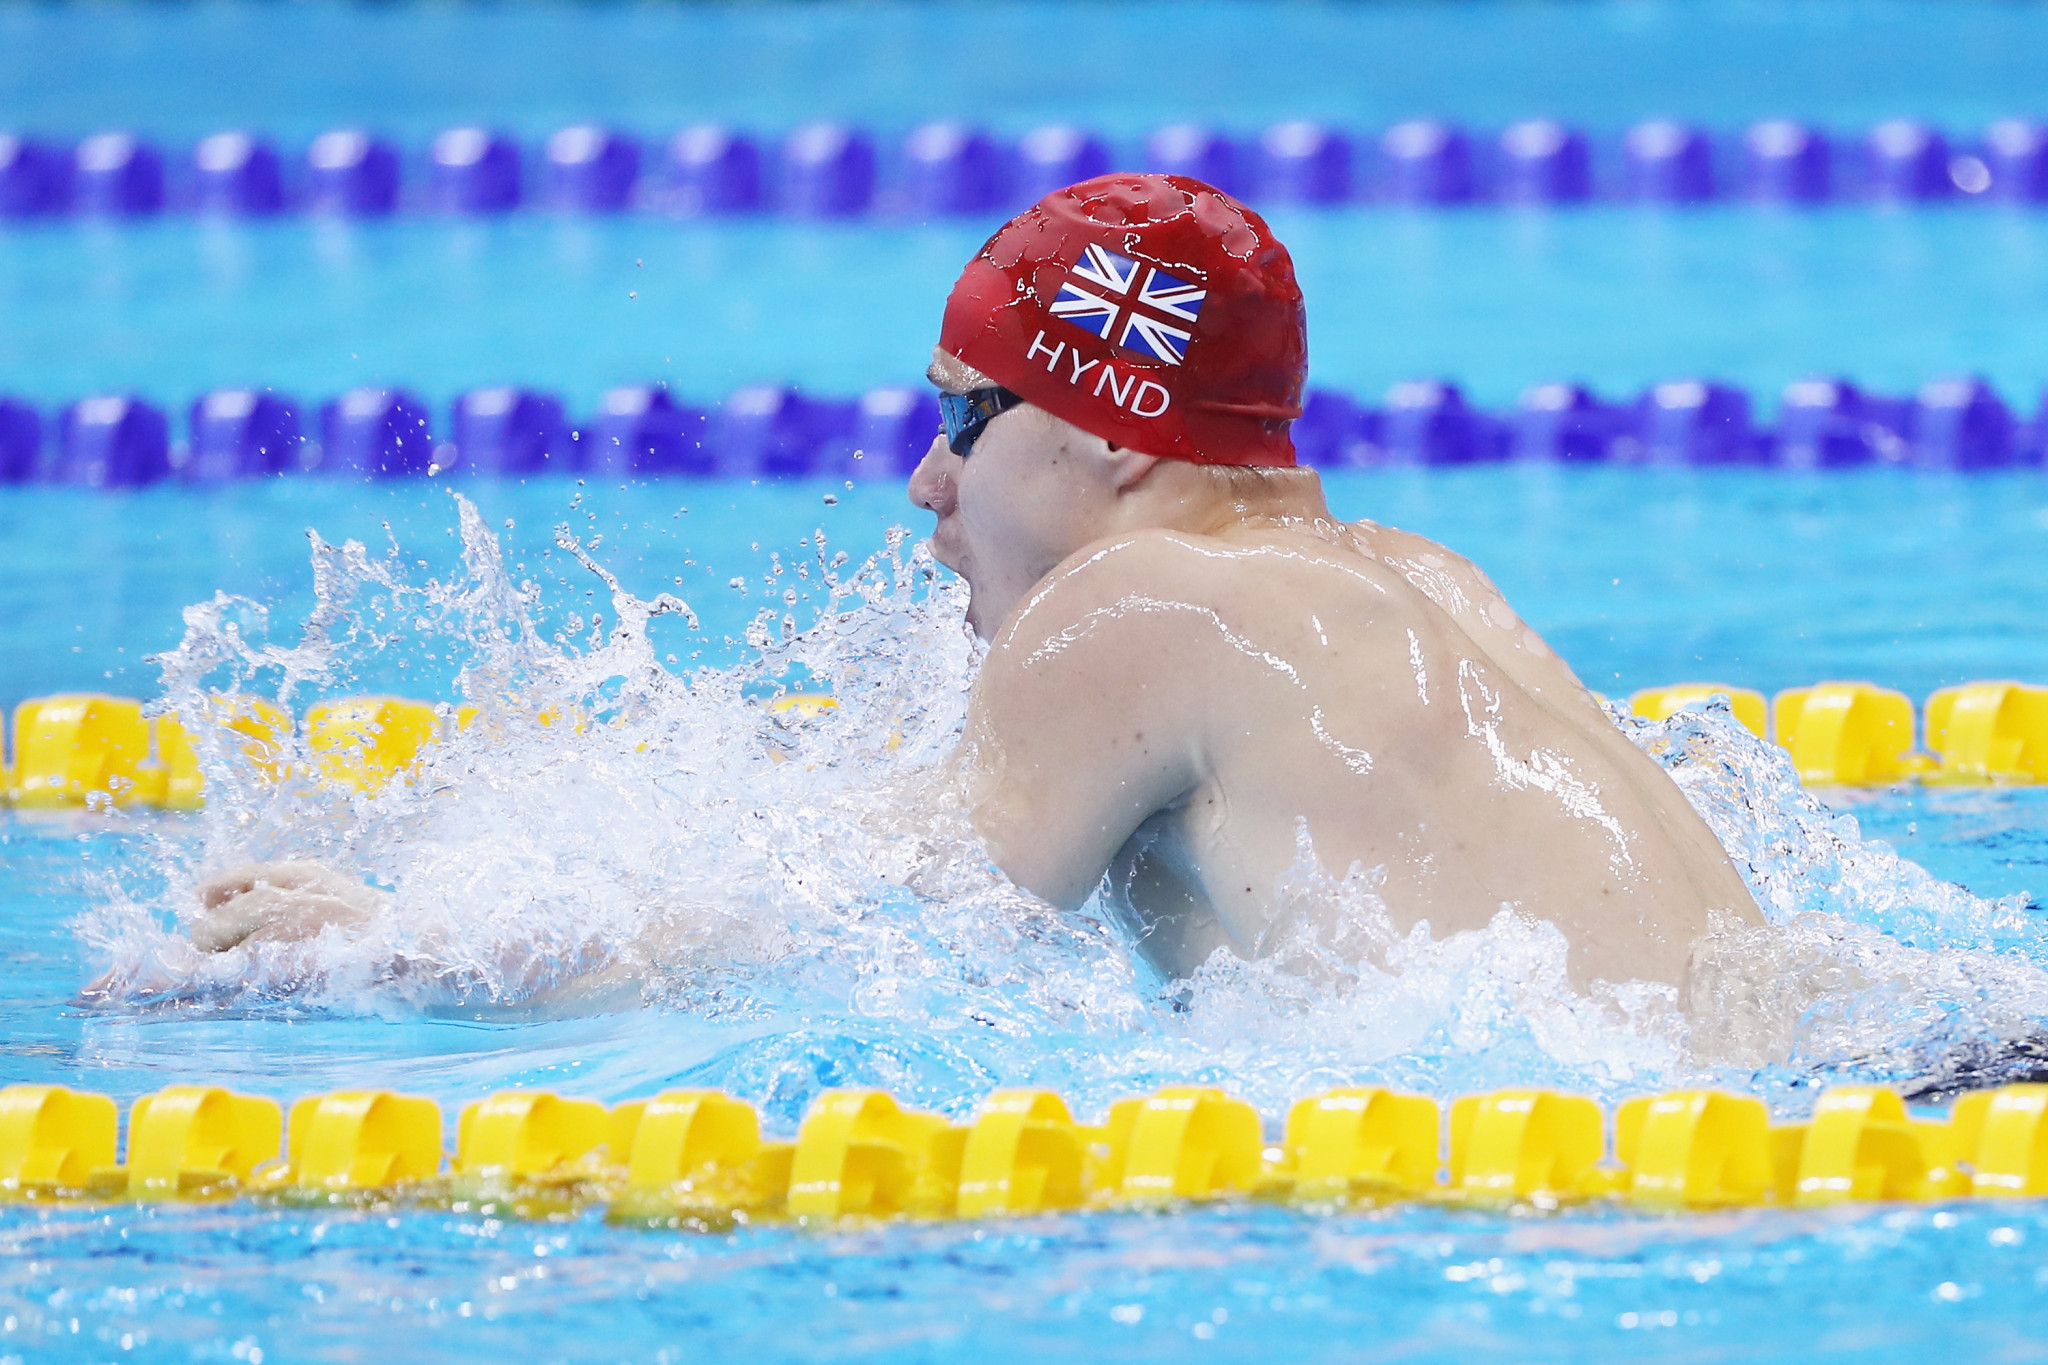 Oliver Hynd pictured swimming at the Rio 2016 Paralympics ©Getty Images